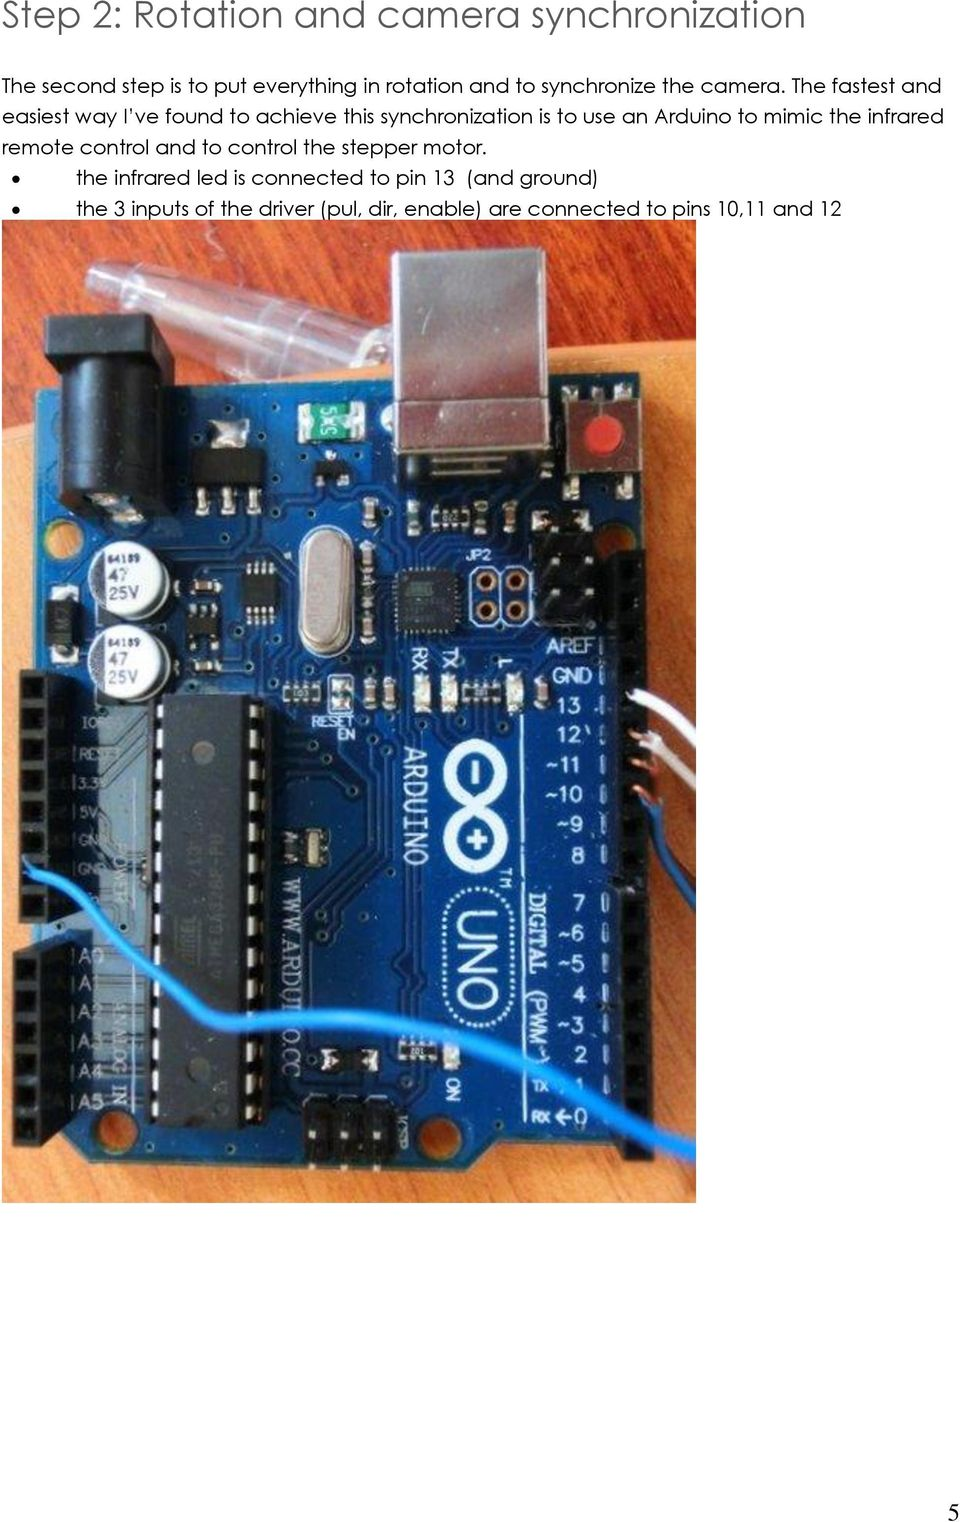 The fastest and easiest way I ve found to achieve this synchronization is to use an Arduino to mimic the